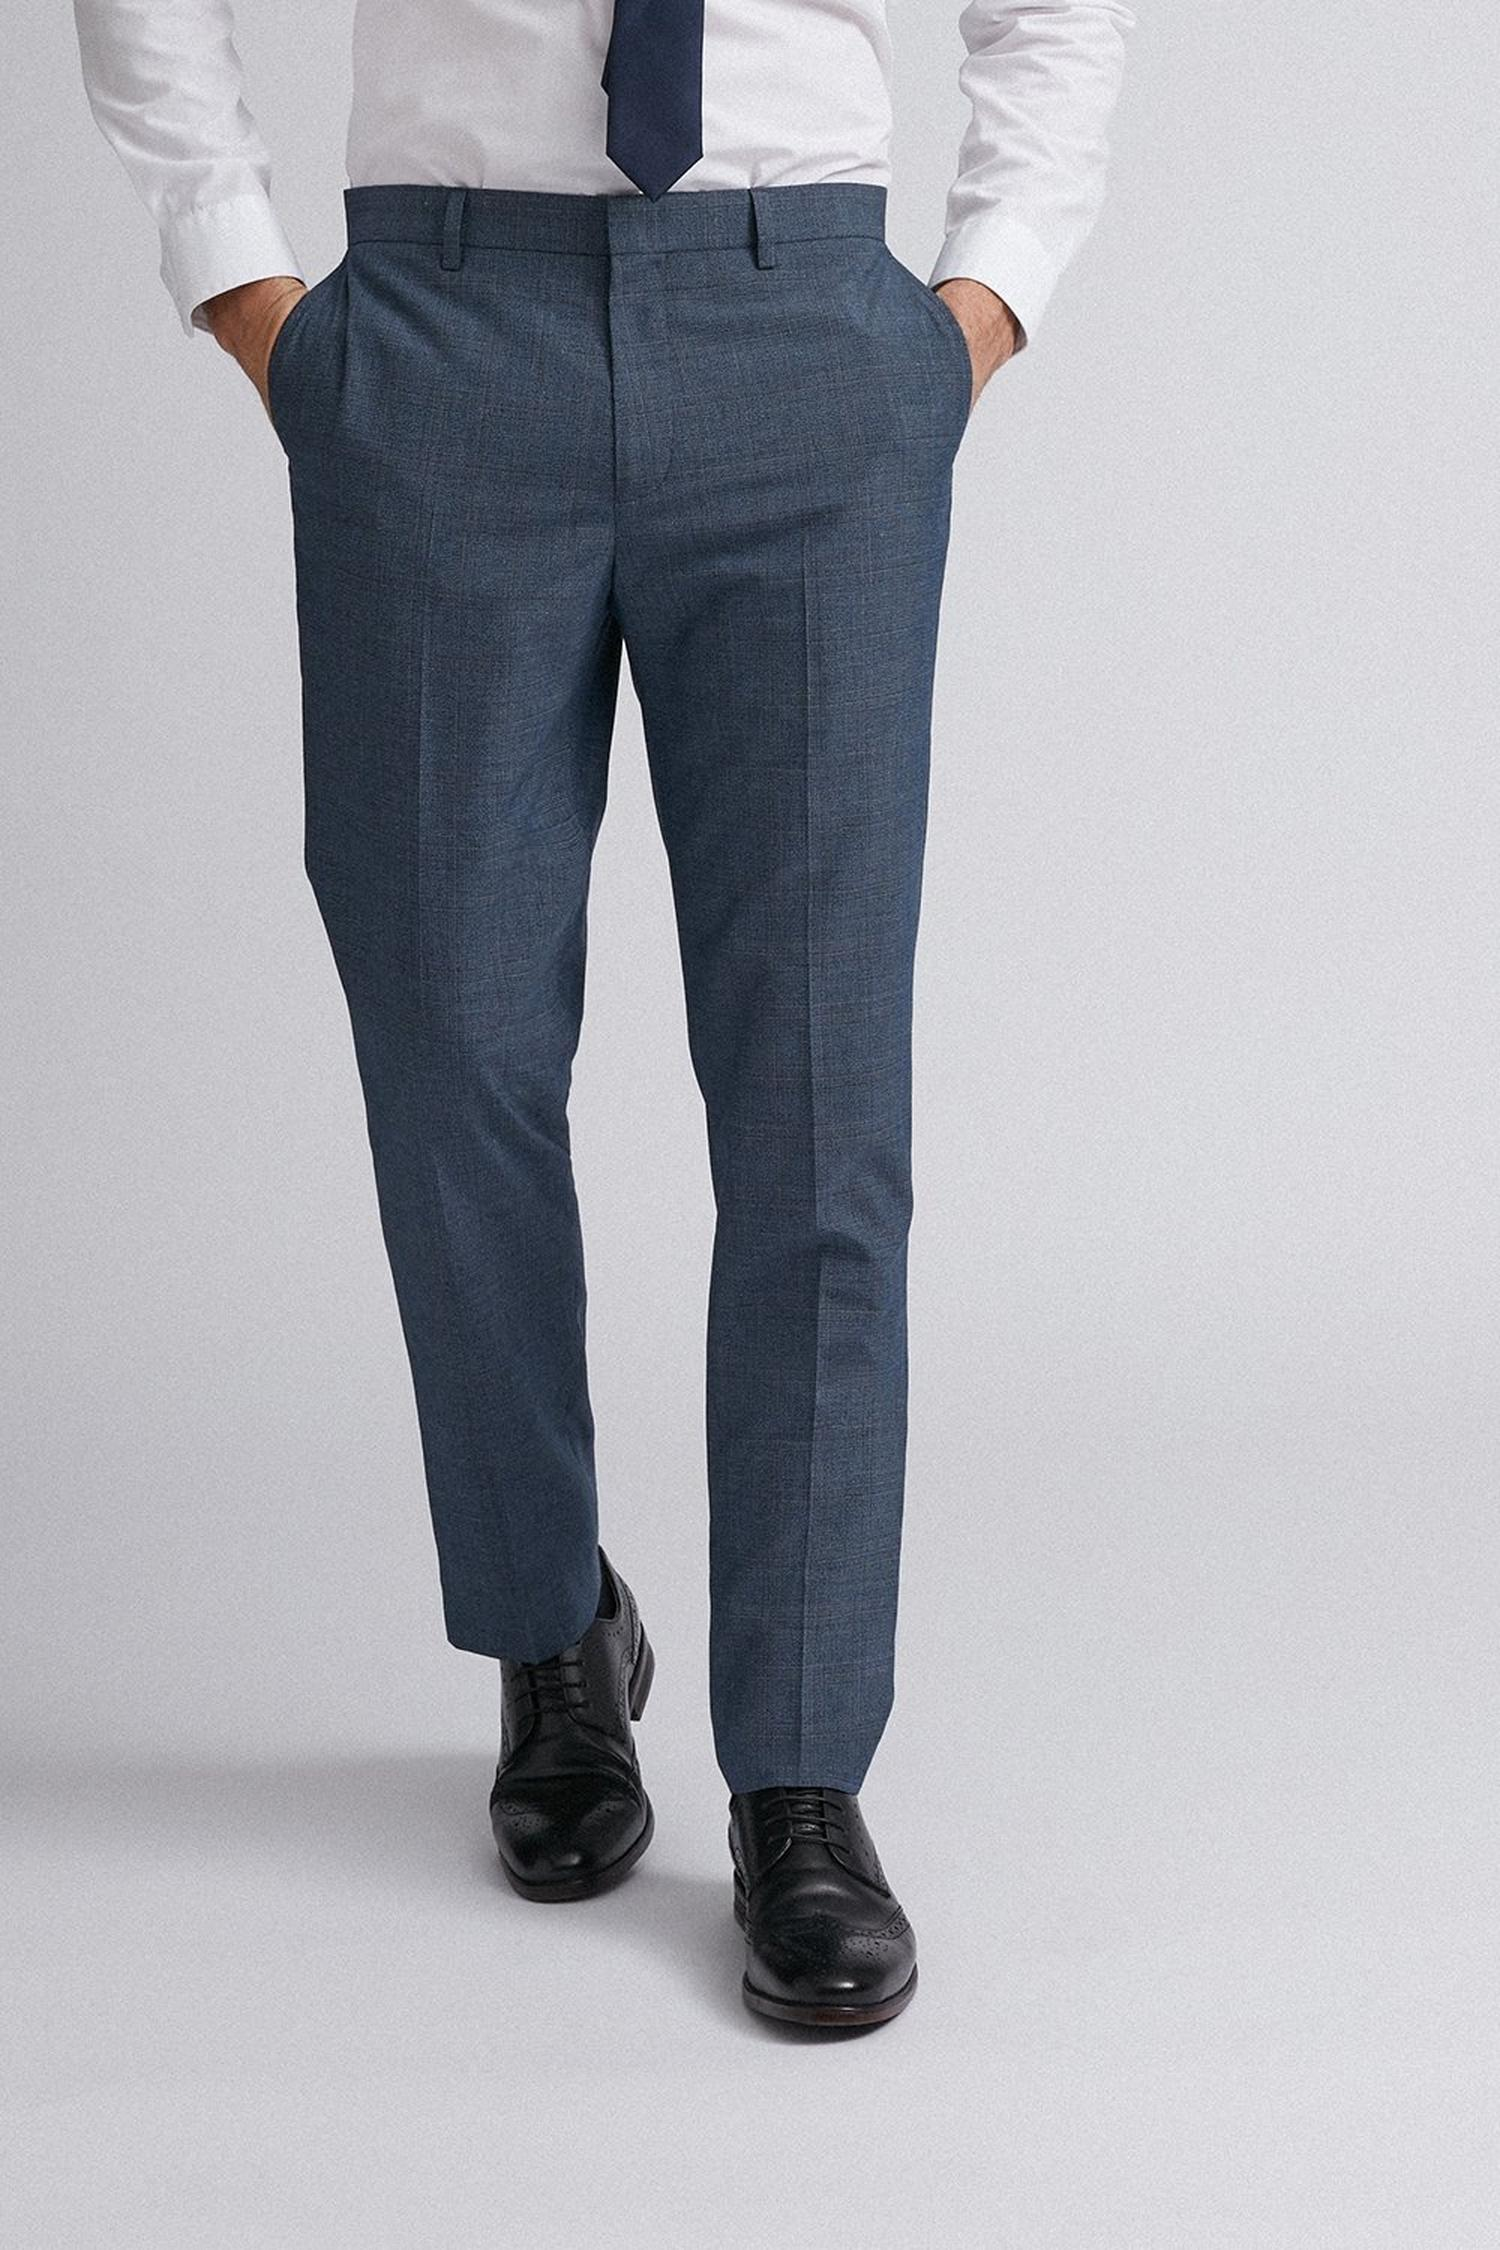 106 Blue Jaspe Check Slim Fit Suit Trousers image number 1